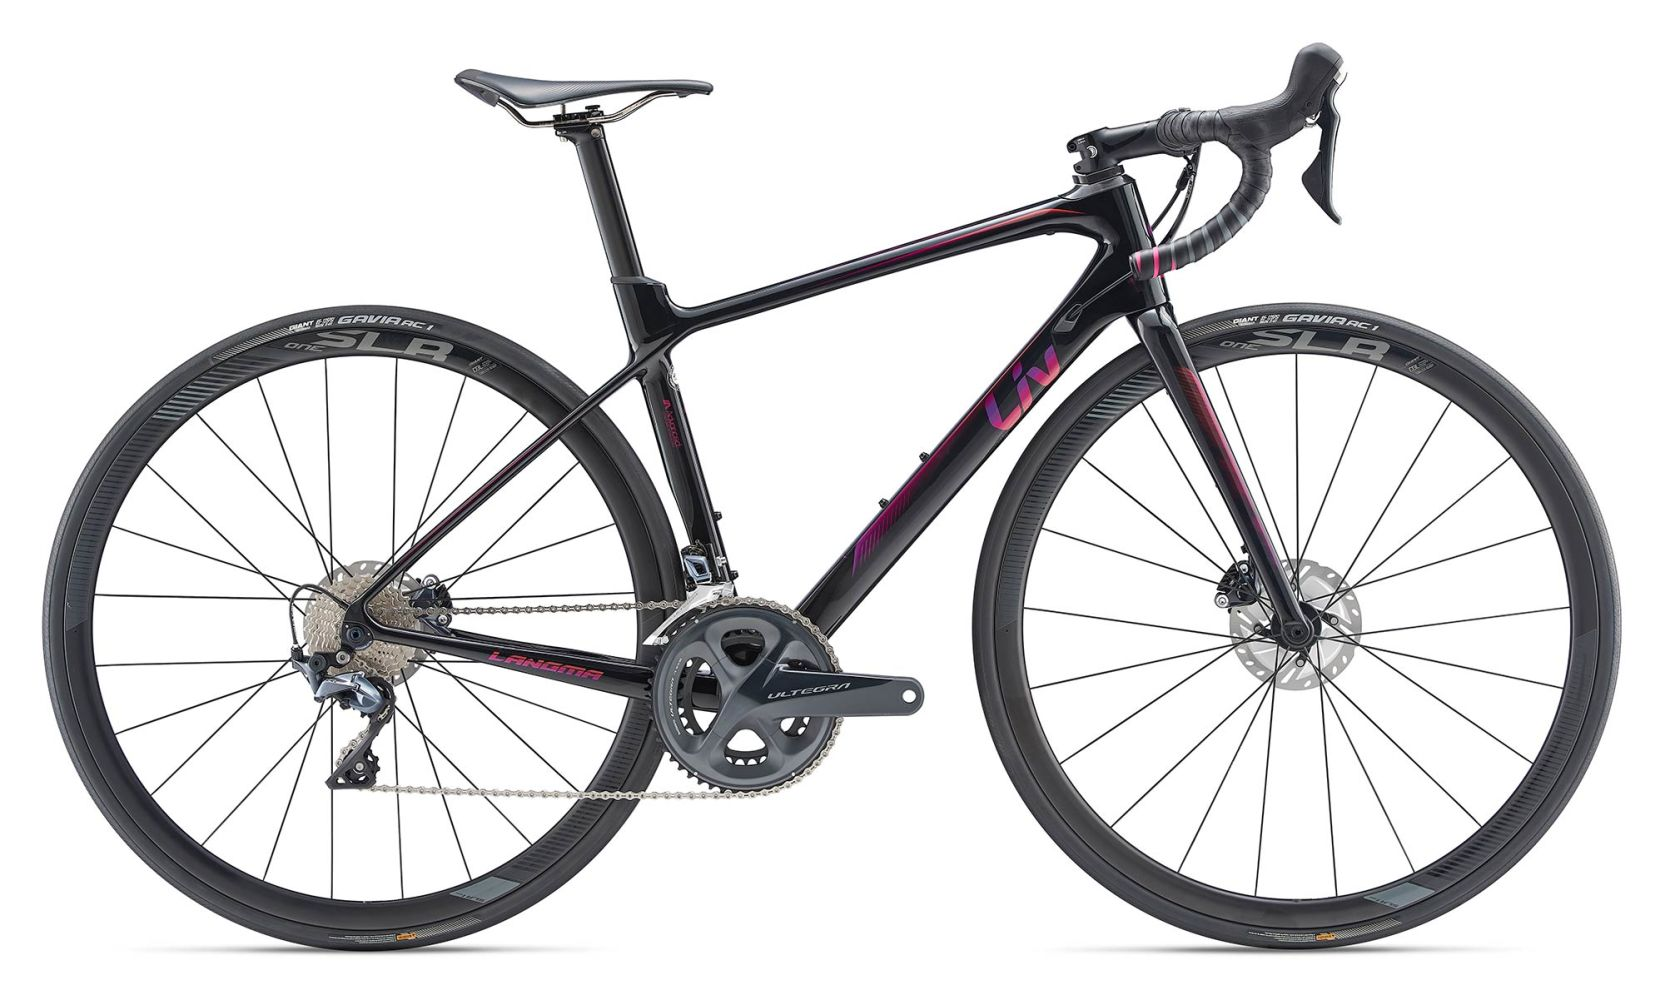 Six best women's road bikes for 2019 and what to look for